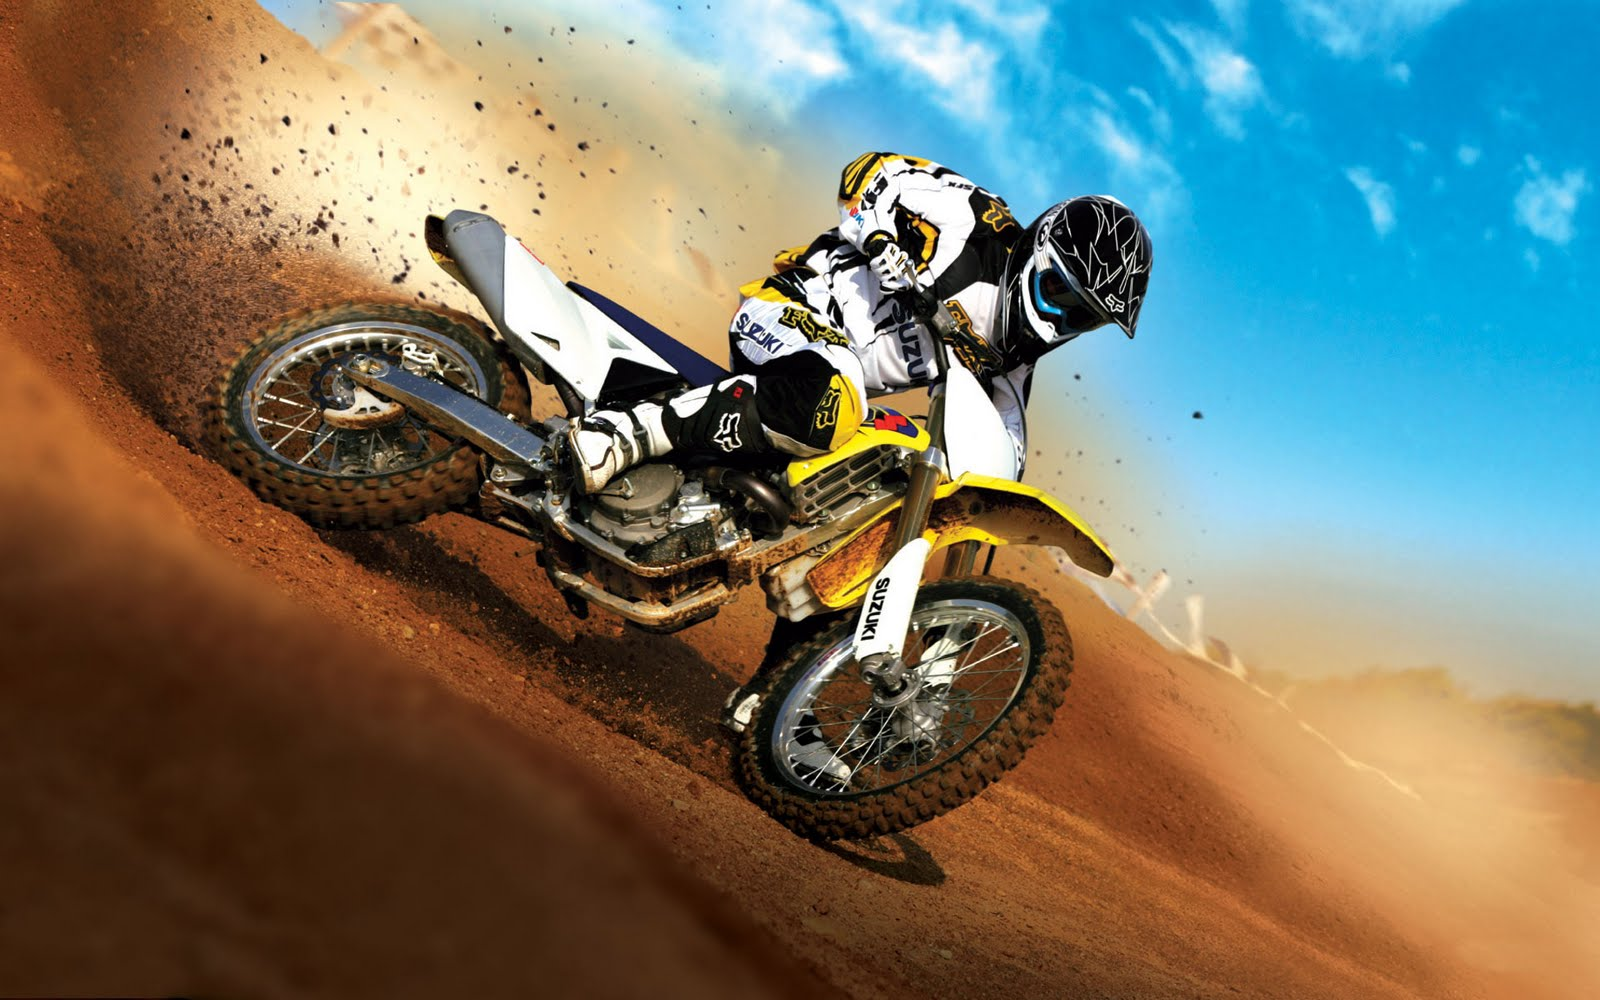 http://1.bp.blogspot.com/-QlbNH2xmcIE/TrPDcaHWfCI/AAAAAAAAKOc/4ejXRQwro0s/s1600/HD+Wallpapers+Widescreen+bike.jpg